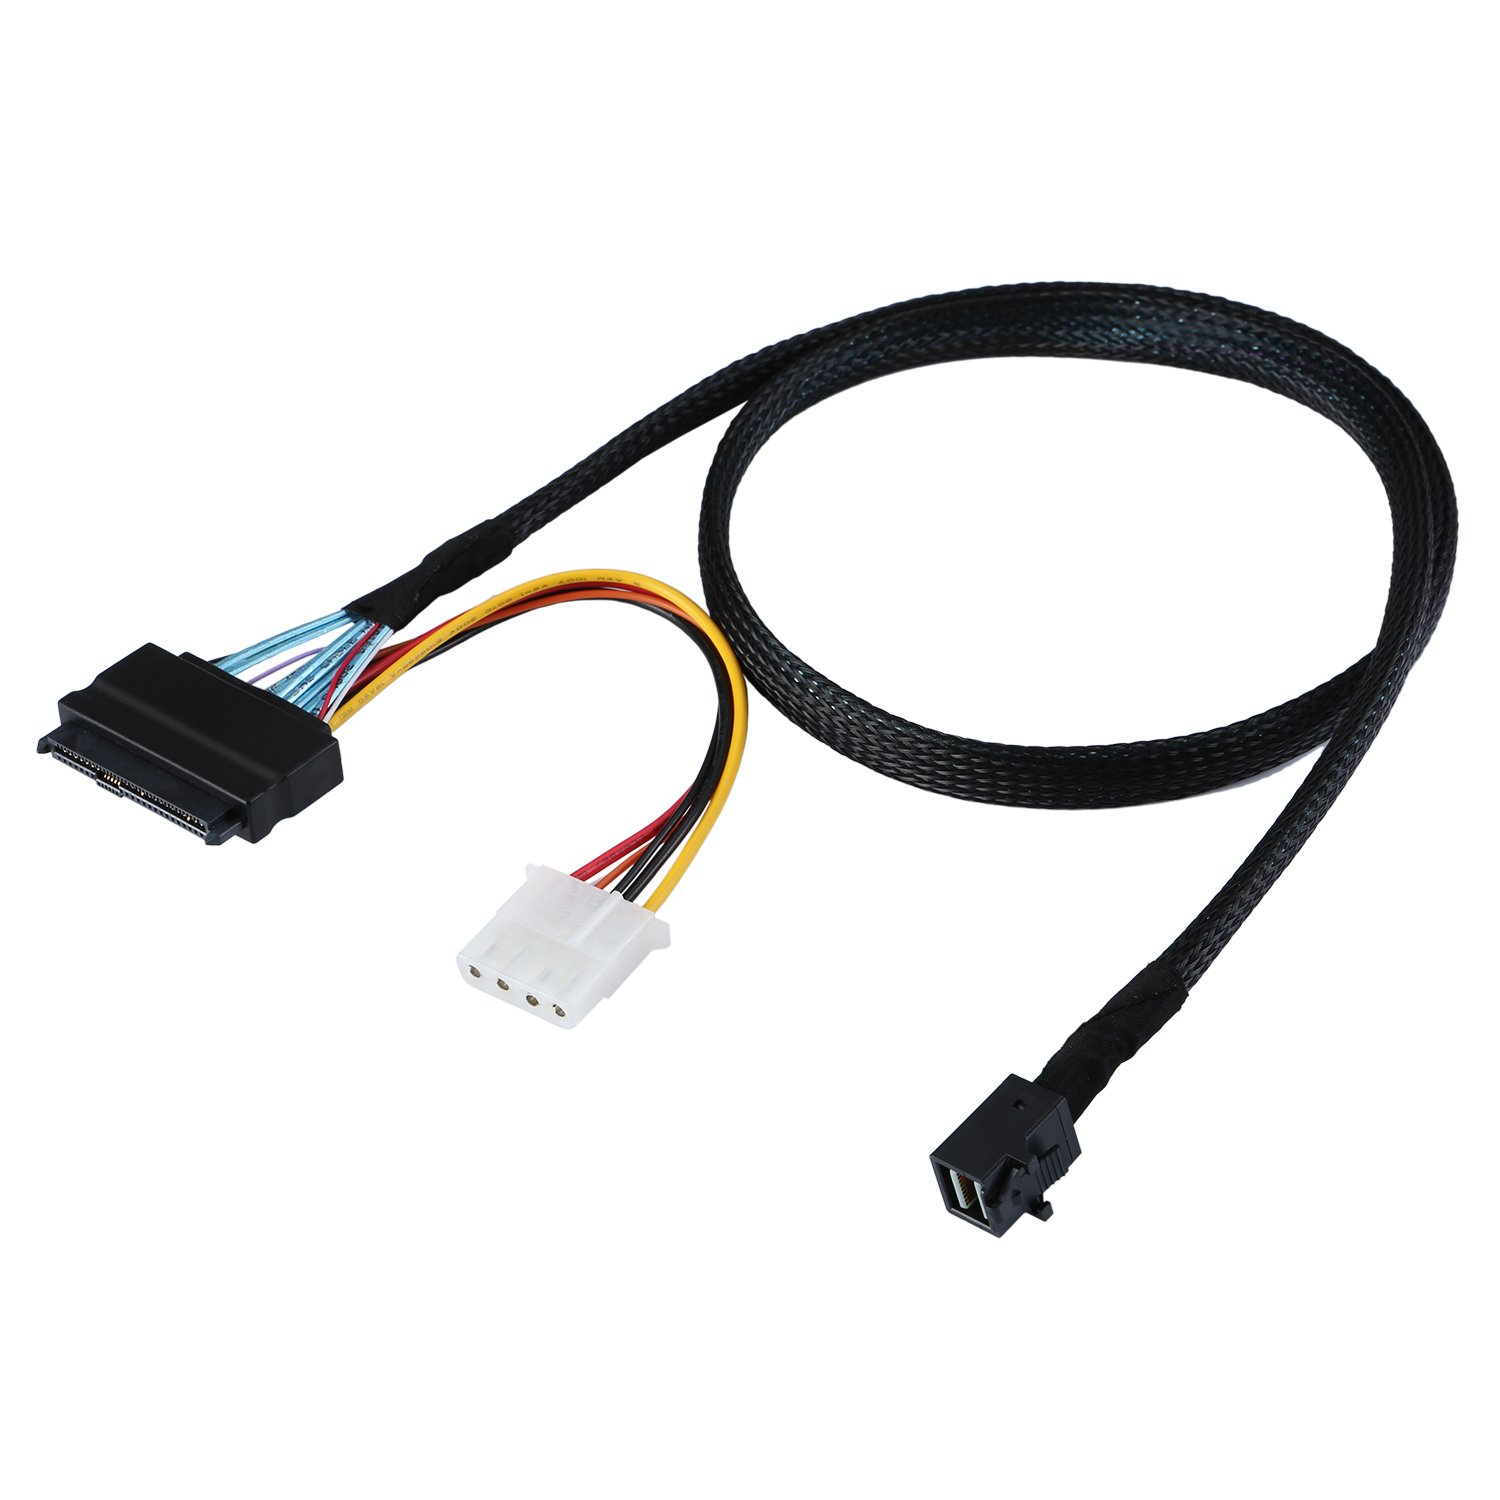 CableCreation 2.5FT Mini SAS HD Cable Internal Mini SAS SFF 8643 to U.2 SFF 8639 Cable with 4 Pin SATA Power Connector for Workstations,Servers and More by CableCreation (Image #4)